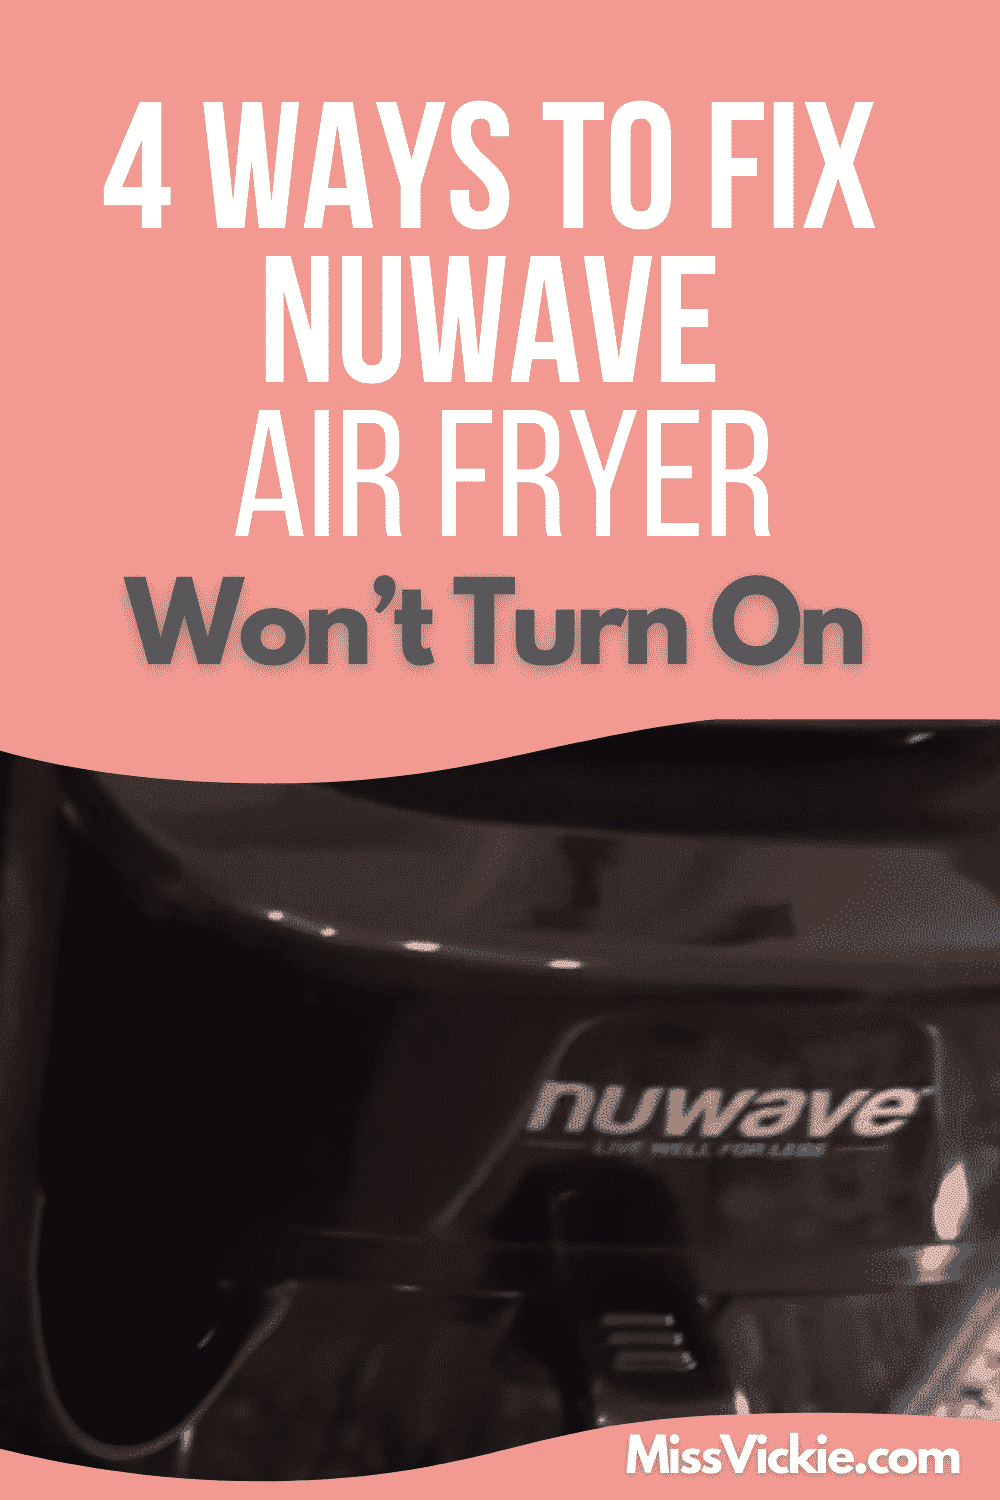 Nuwave Air Fryer Wont Turn On